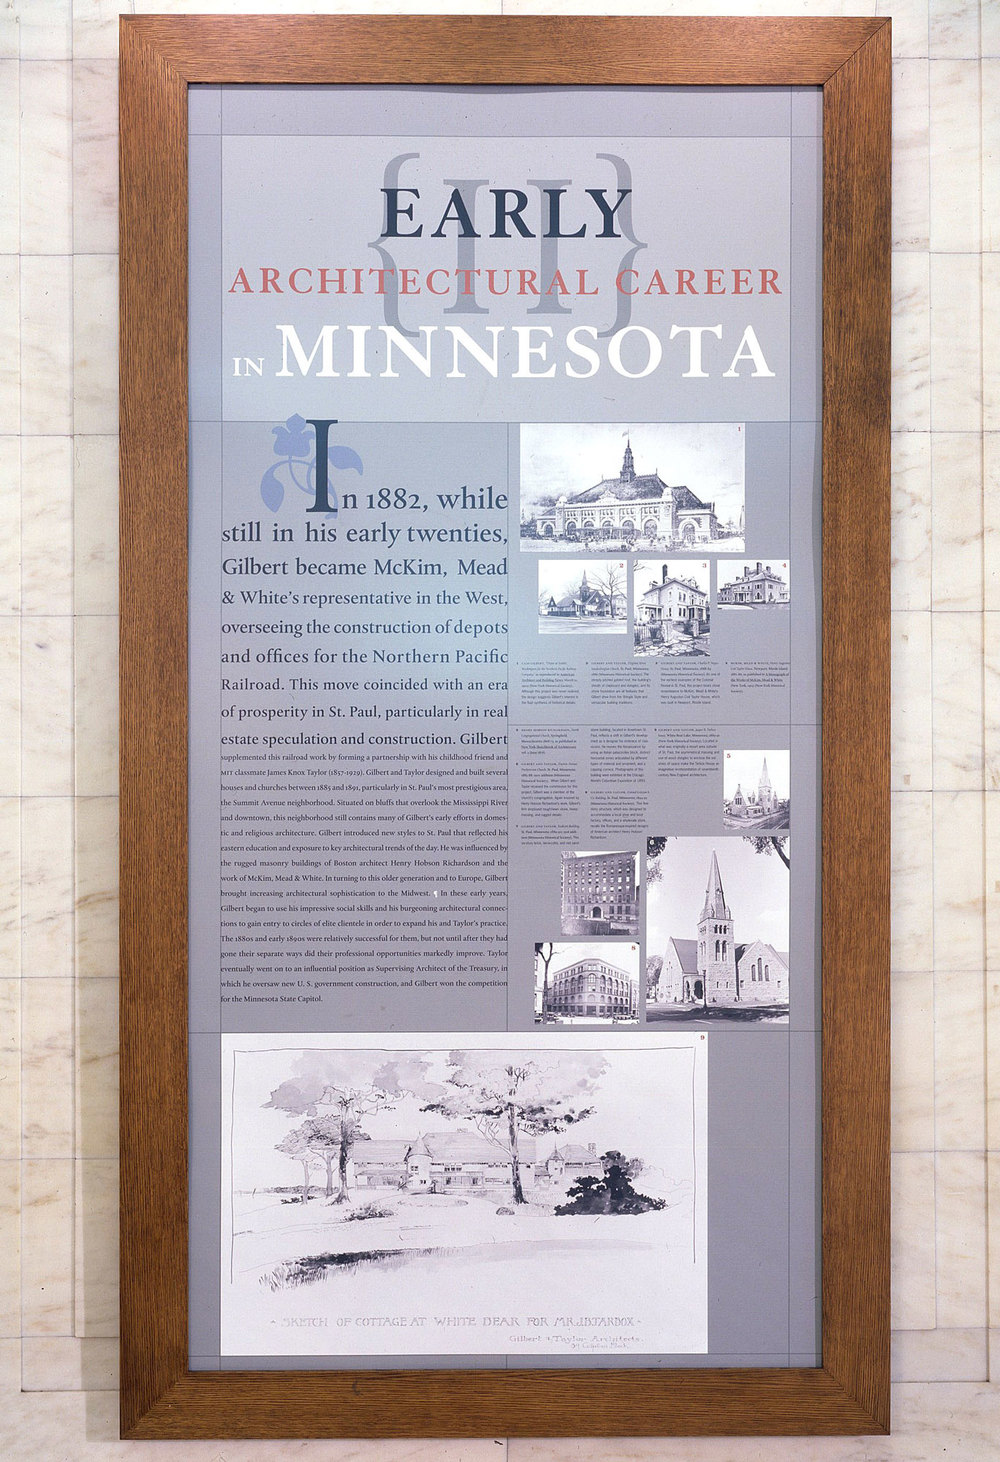 Traveling exhibition of the architect Cass Gilbert. The exhibit was designed as six large posters mounted in sturdy wood picture frames making it easy to pack and hang.